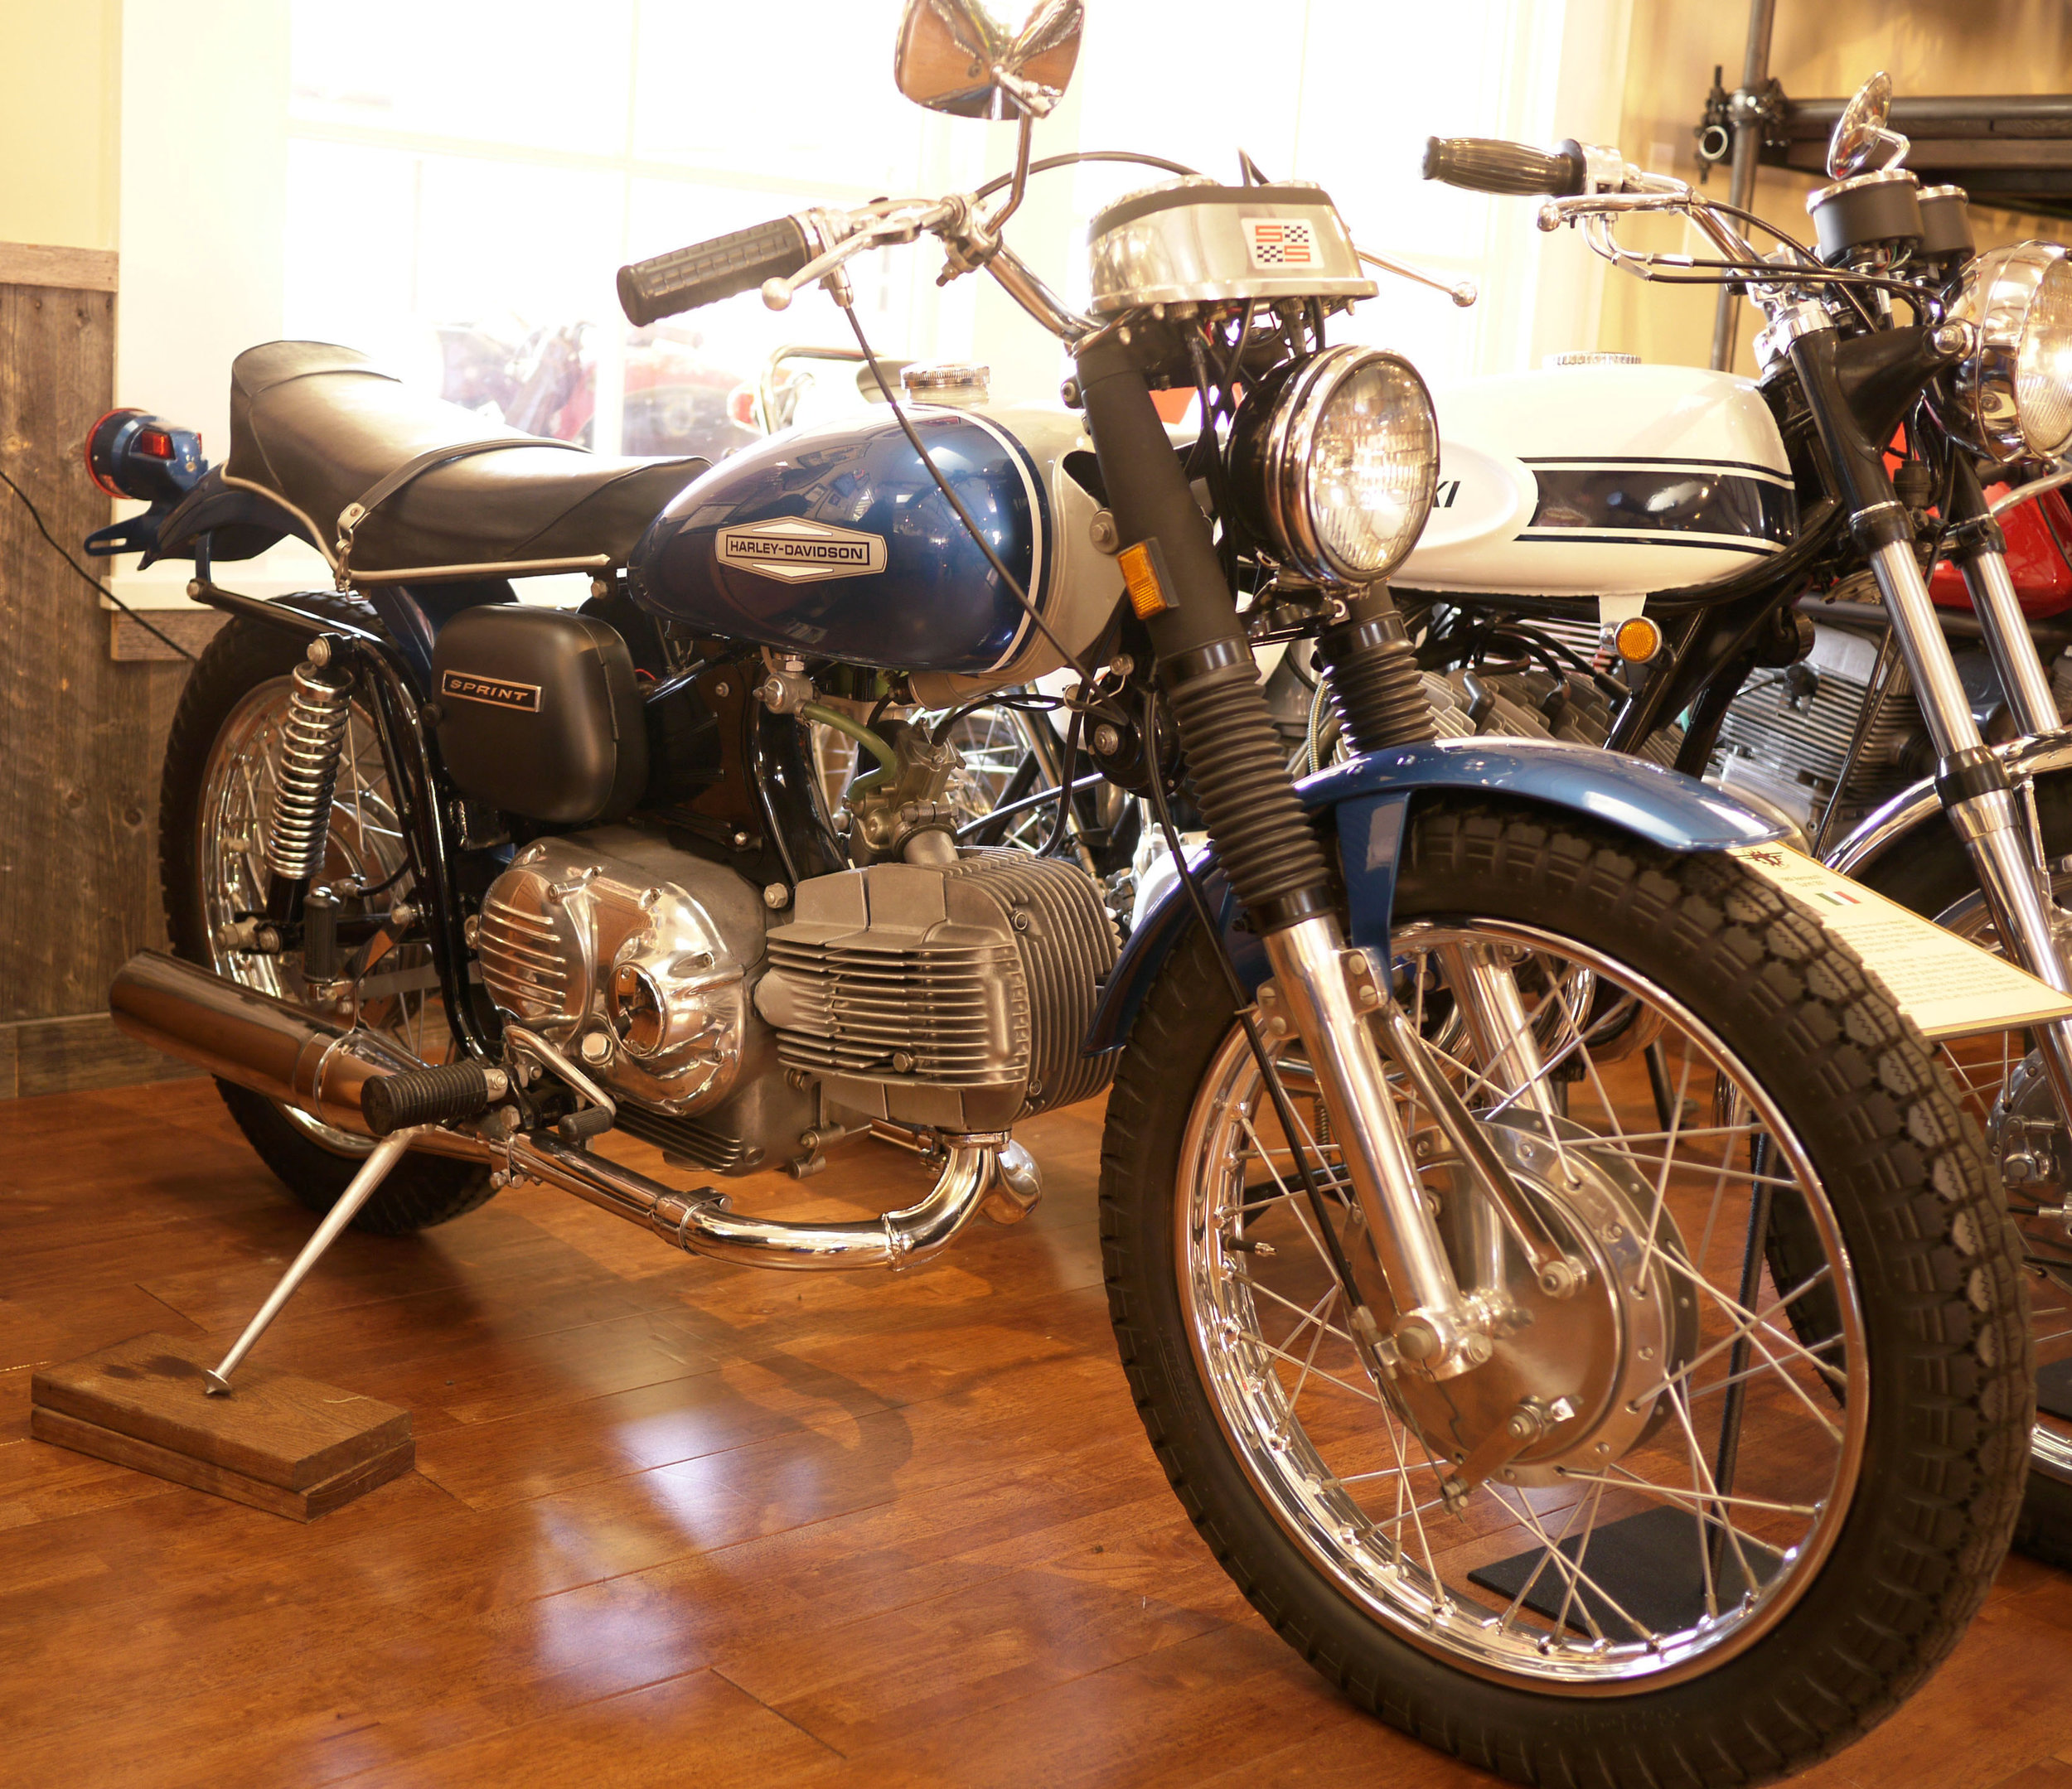 Super clean Harley Aermacchi Sprint 350. These are total sleepers.